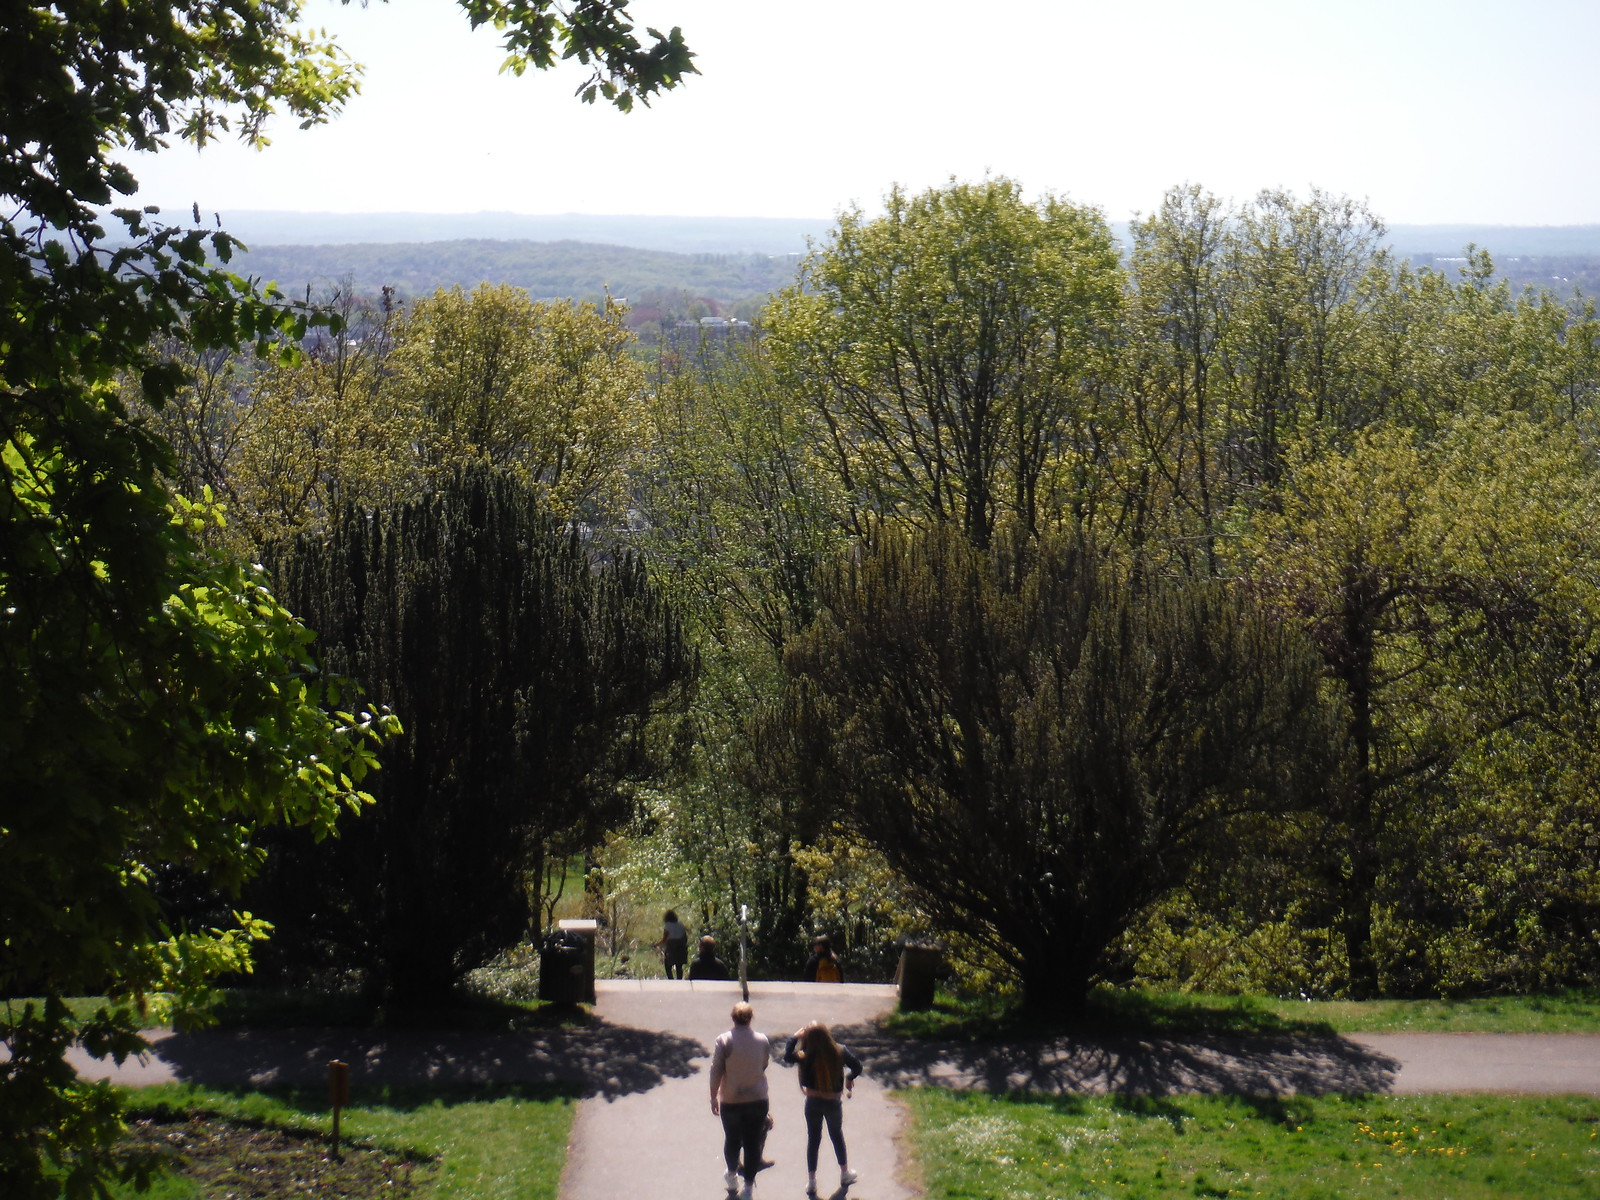 View from top of Terraced Gardens, Castle Wood SWC Short Walk 44 - Oxleas Wood and Shooters Hill (Falconwood Circular)